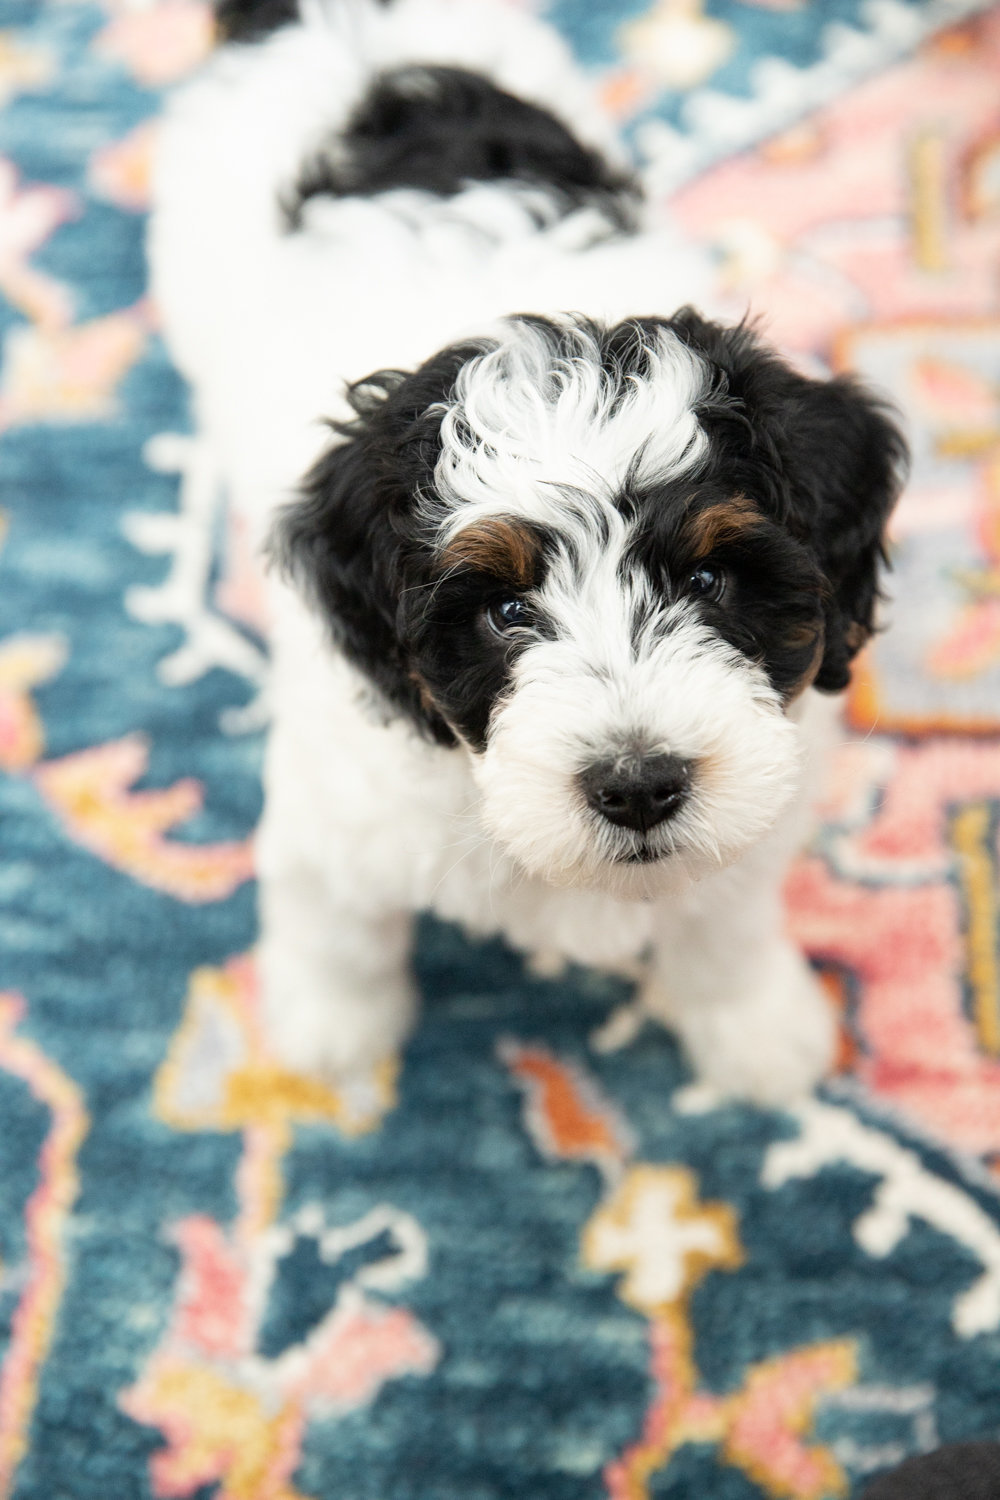 Pet portrait of 8 week old bernedoodle puppy in New York